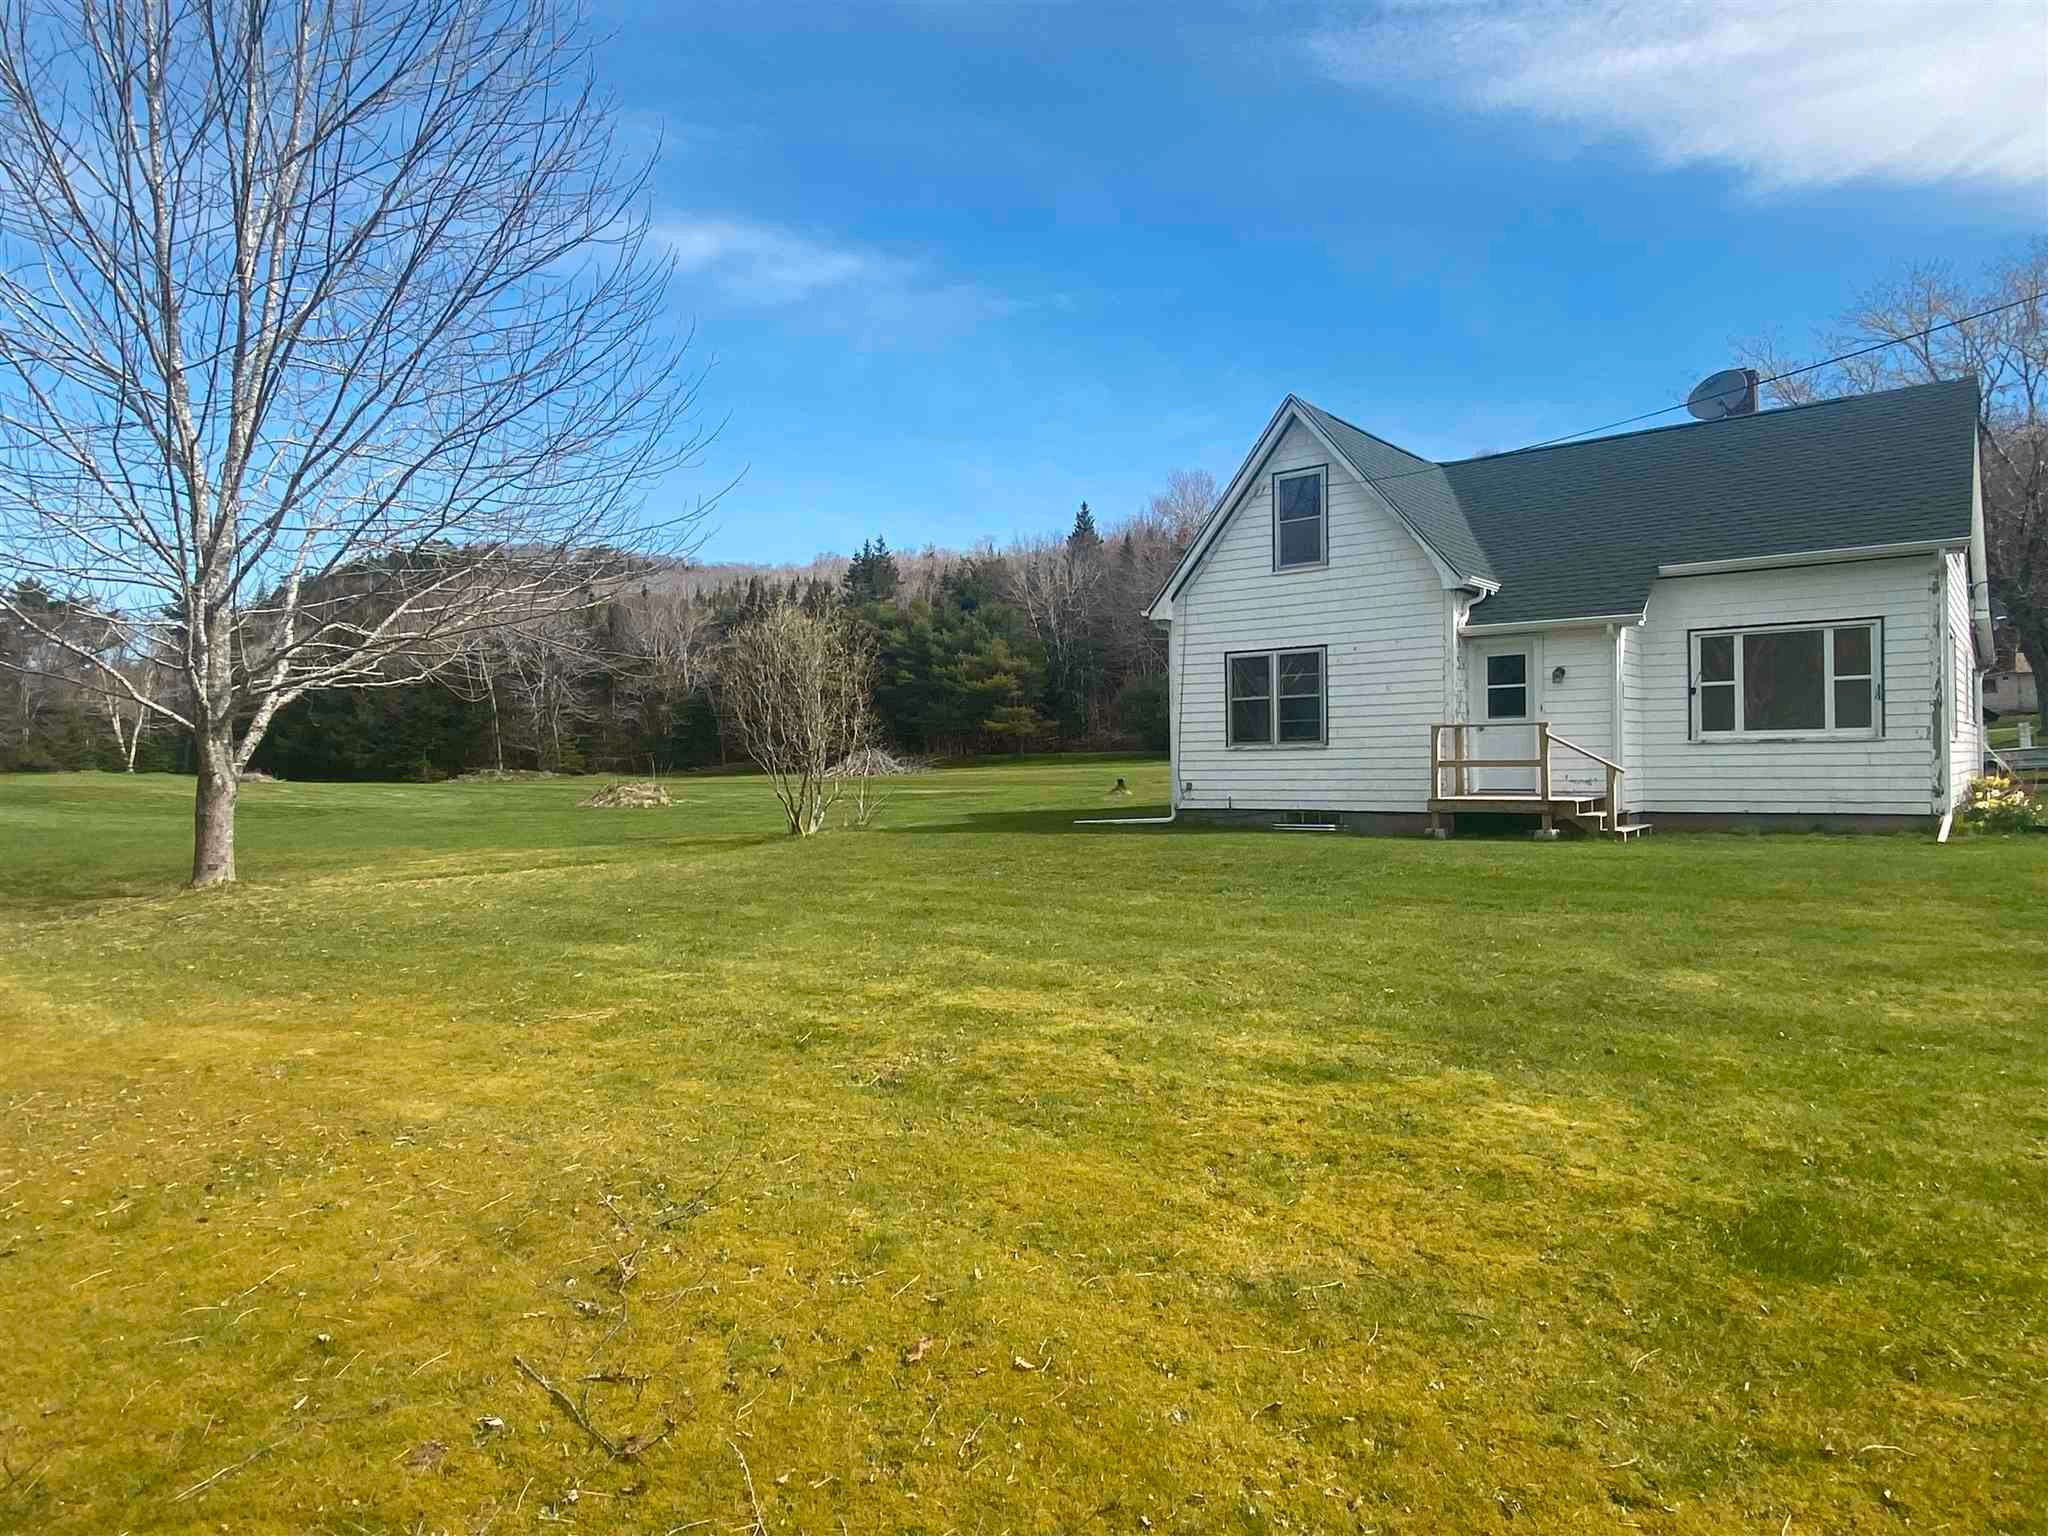 Main Photo: 8664 Highway 7 in Sherbrooke: 303-Guysborough County Residential for sale (Highland Region)  : MLS®# 202111497